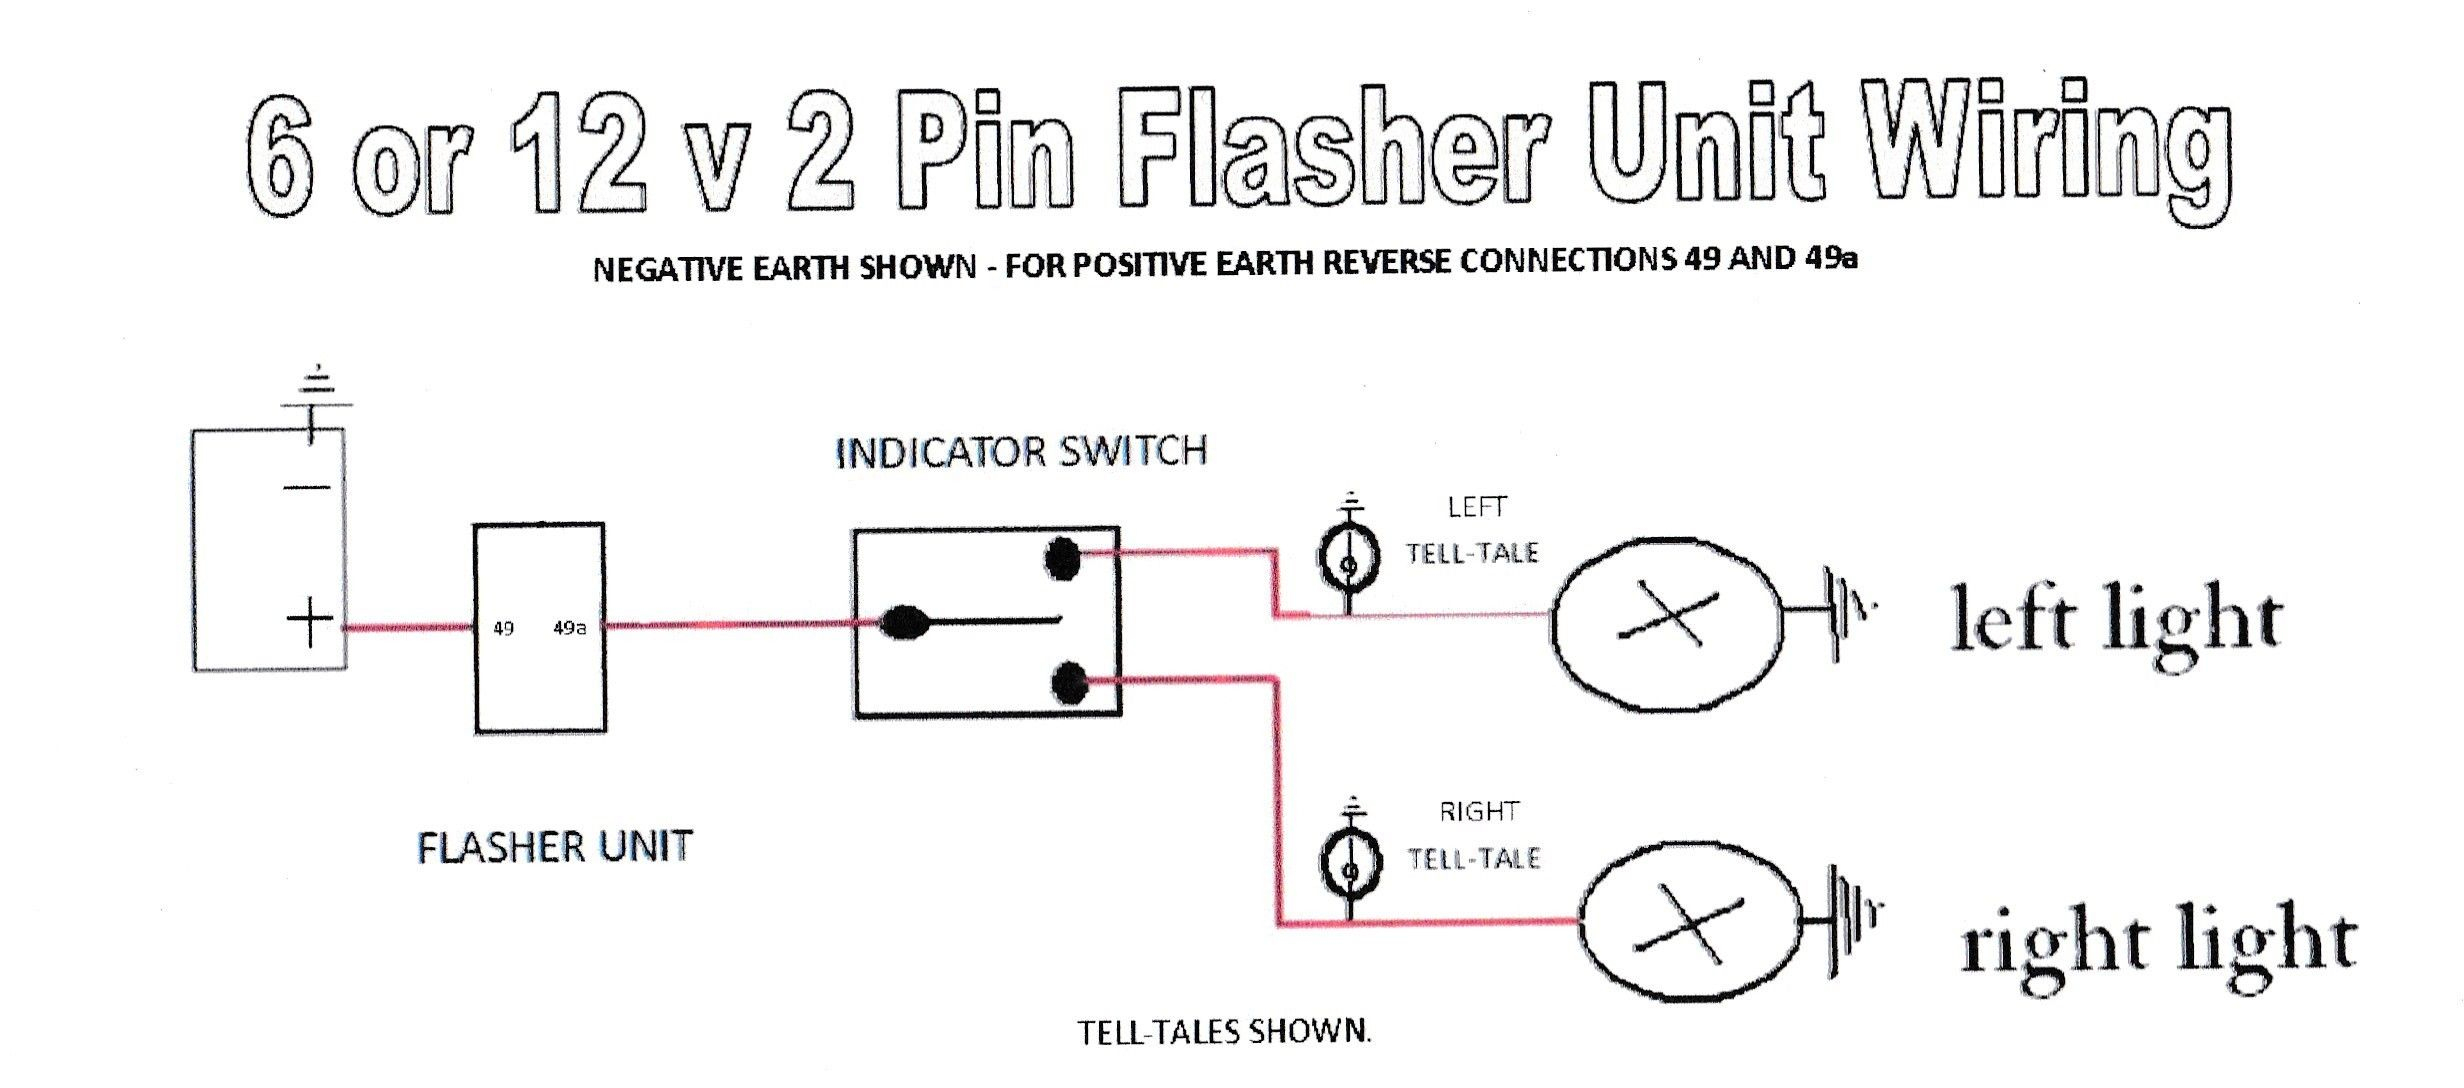 2 Pin Flasher Relay Wiring Diagram - Wiring Data Diagram - 2 Pin Flasher Relay Wiring Diagram